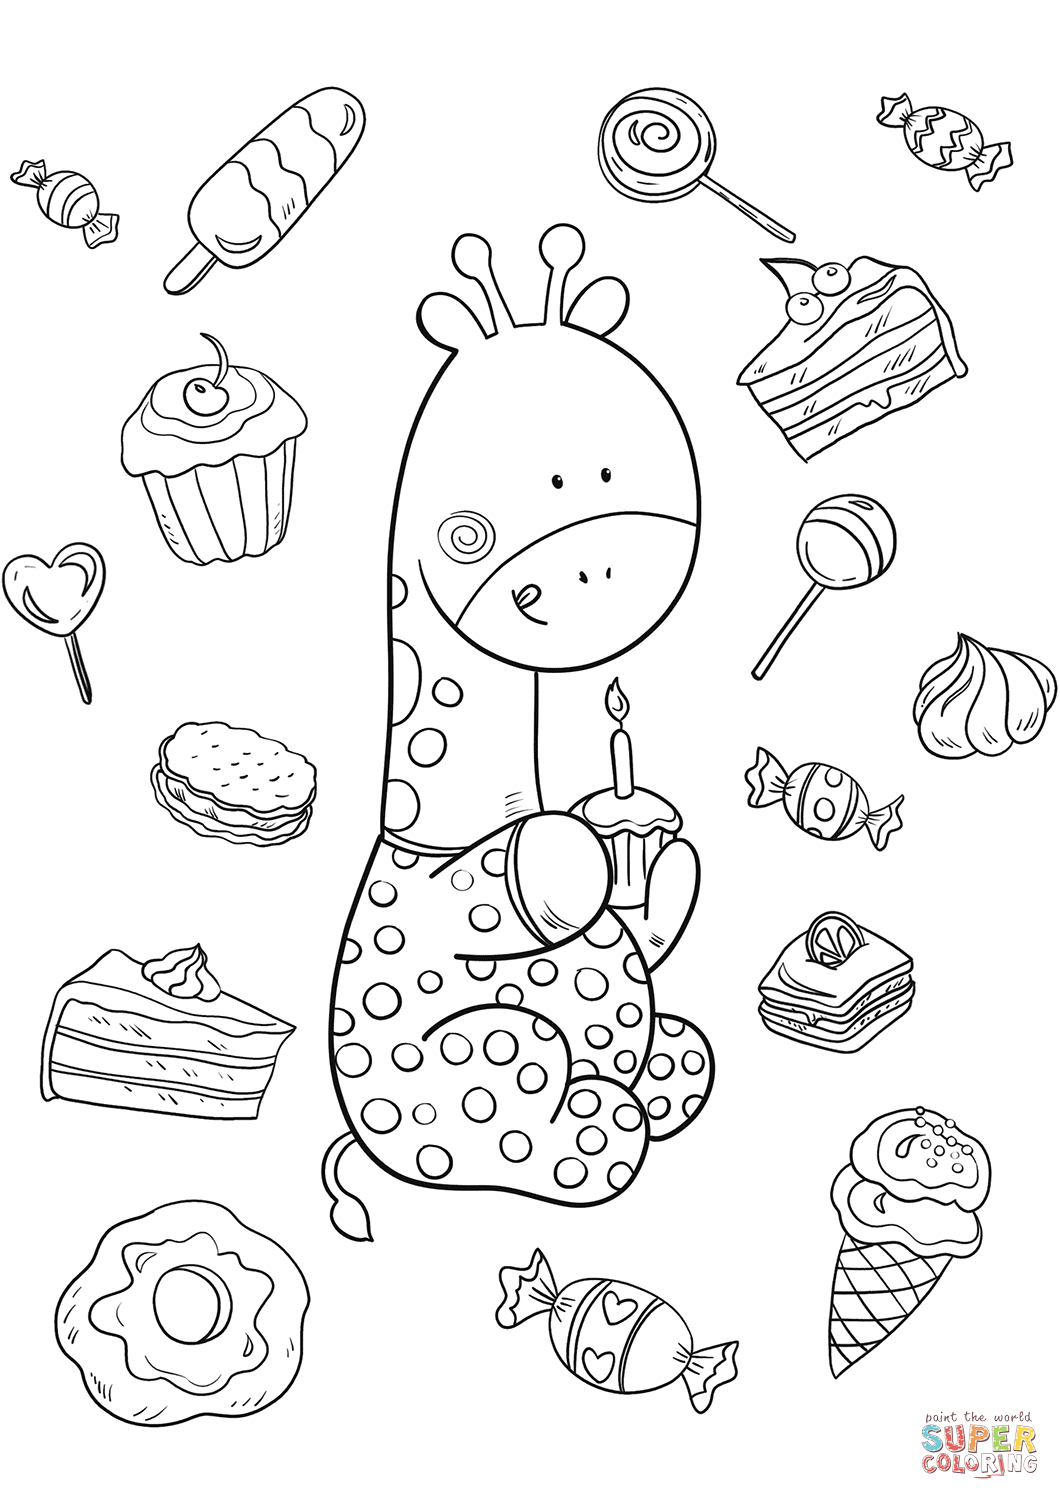 Baby Giraffe Is One Year Old Coloring Page